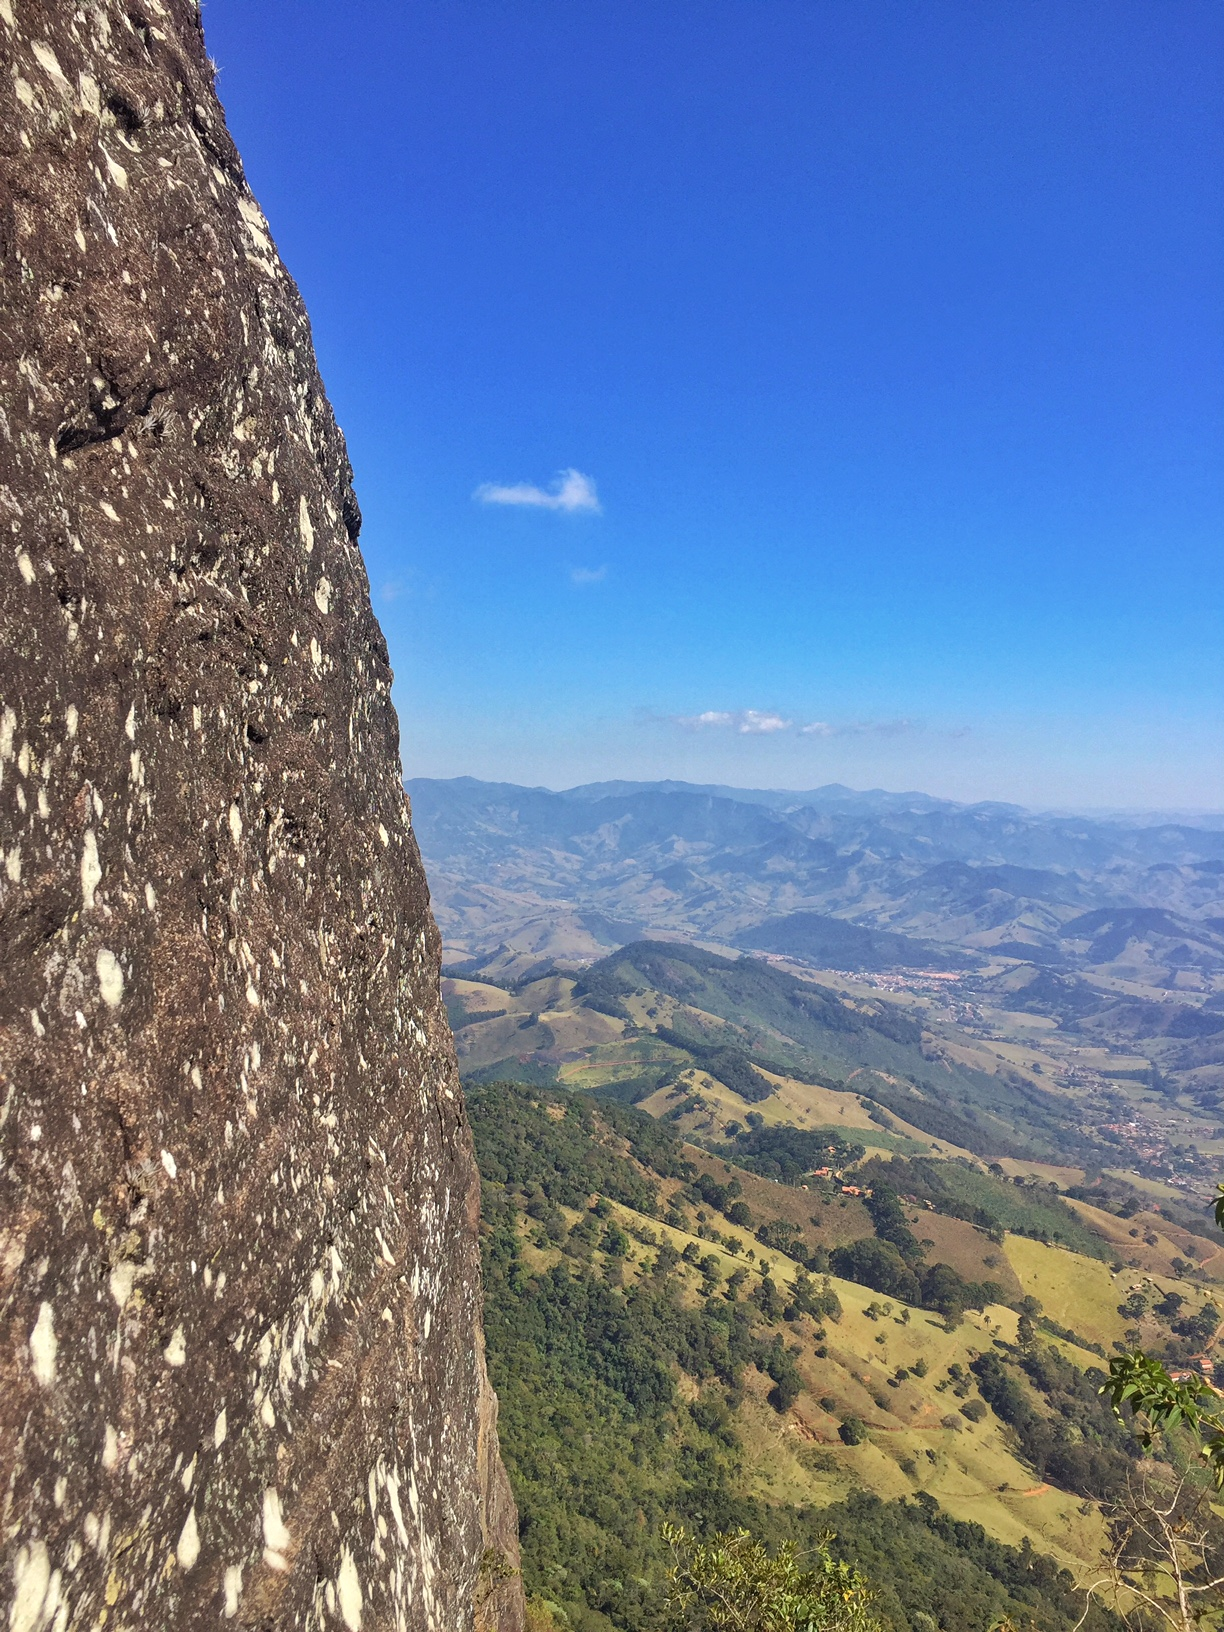 subir a Pedra do Baú